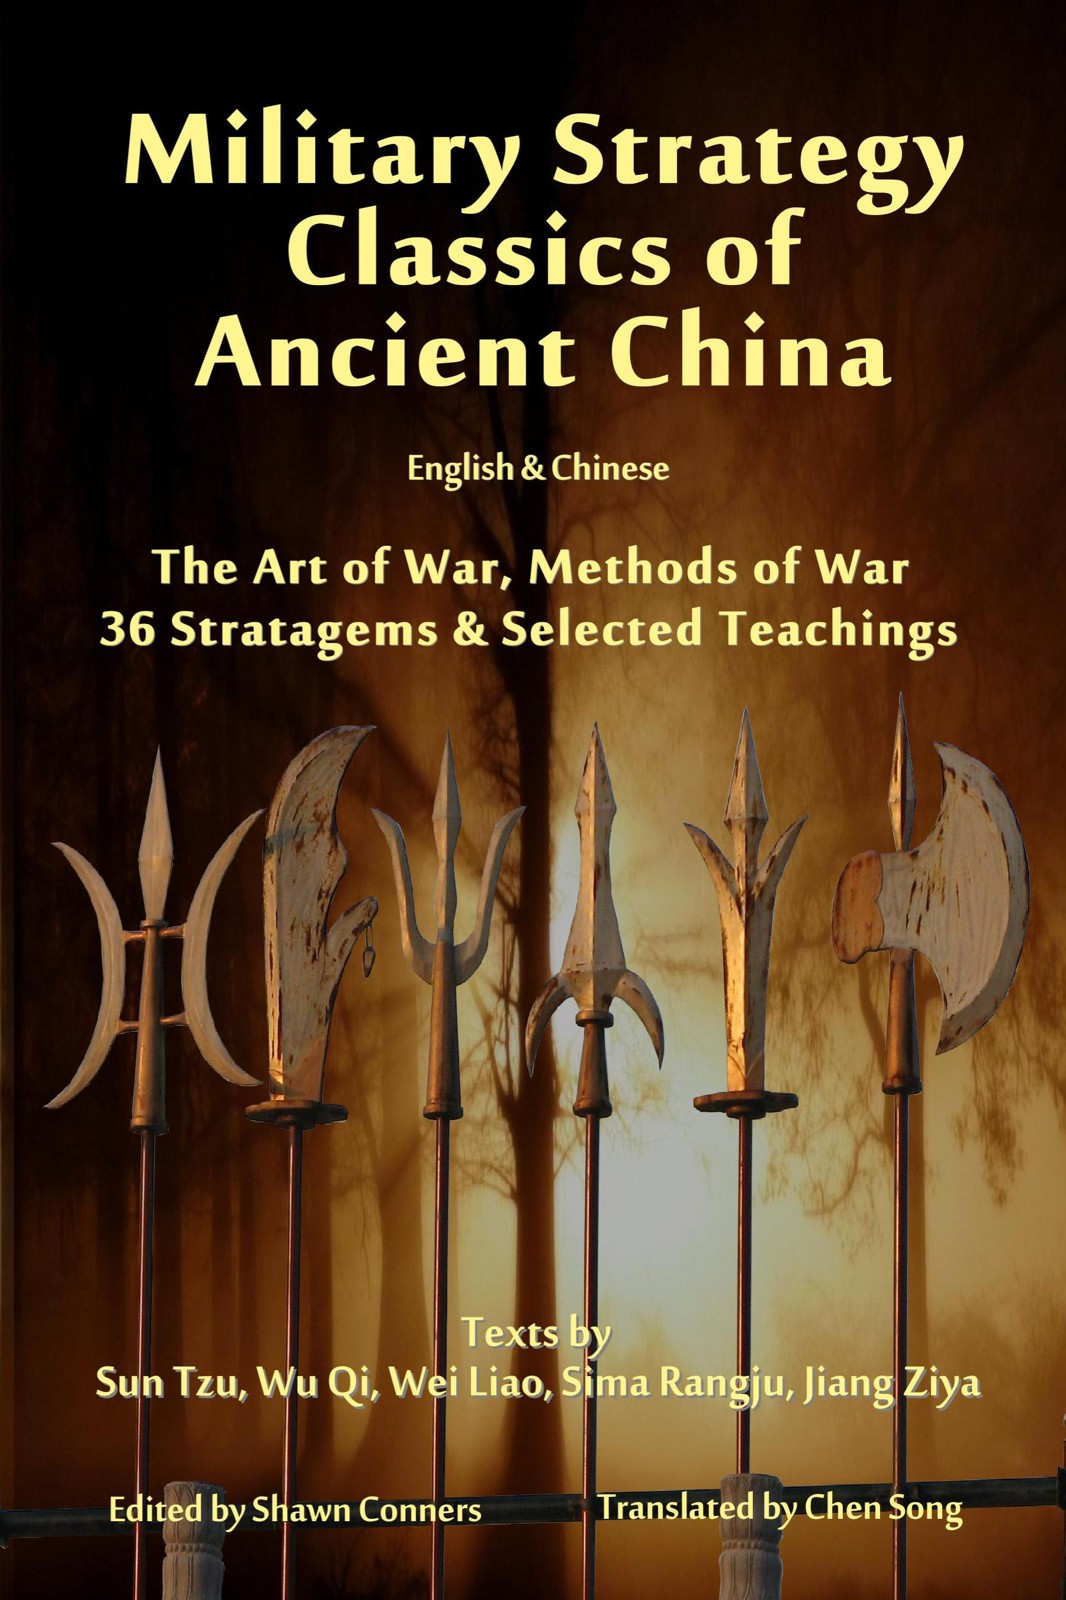 Military Strategy Classics of Ancient China - English & Chinese